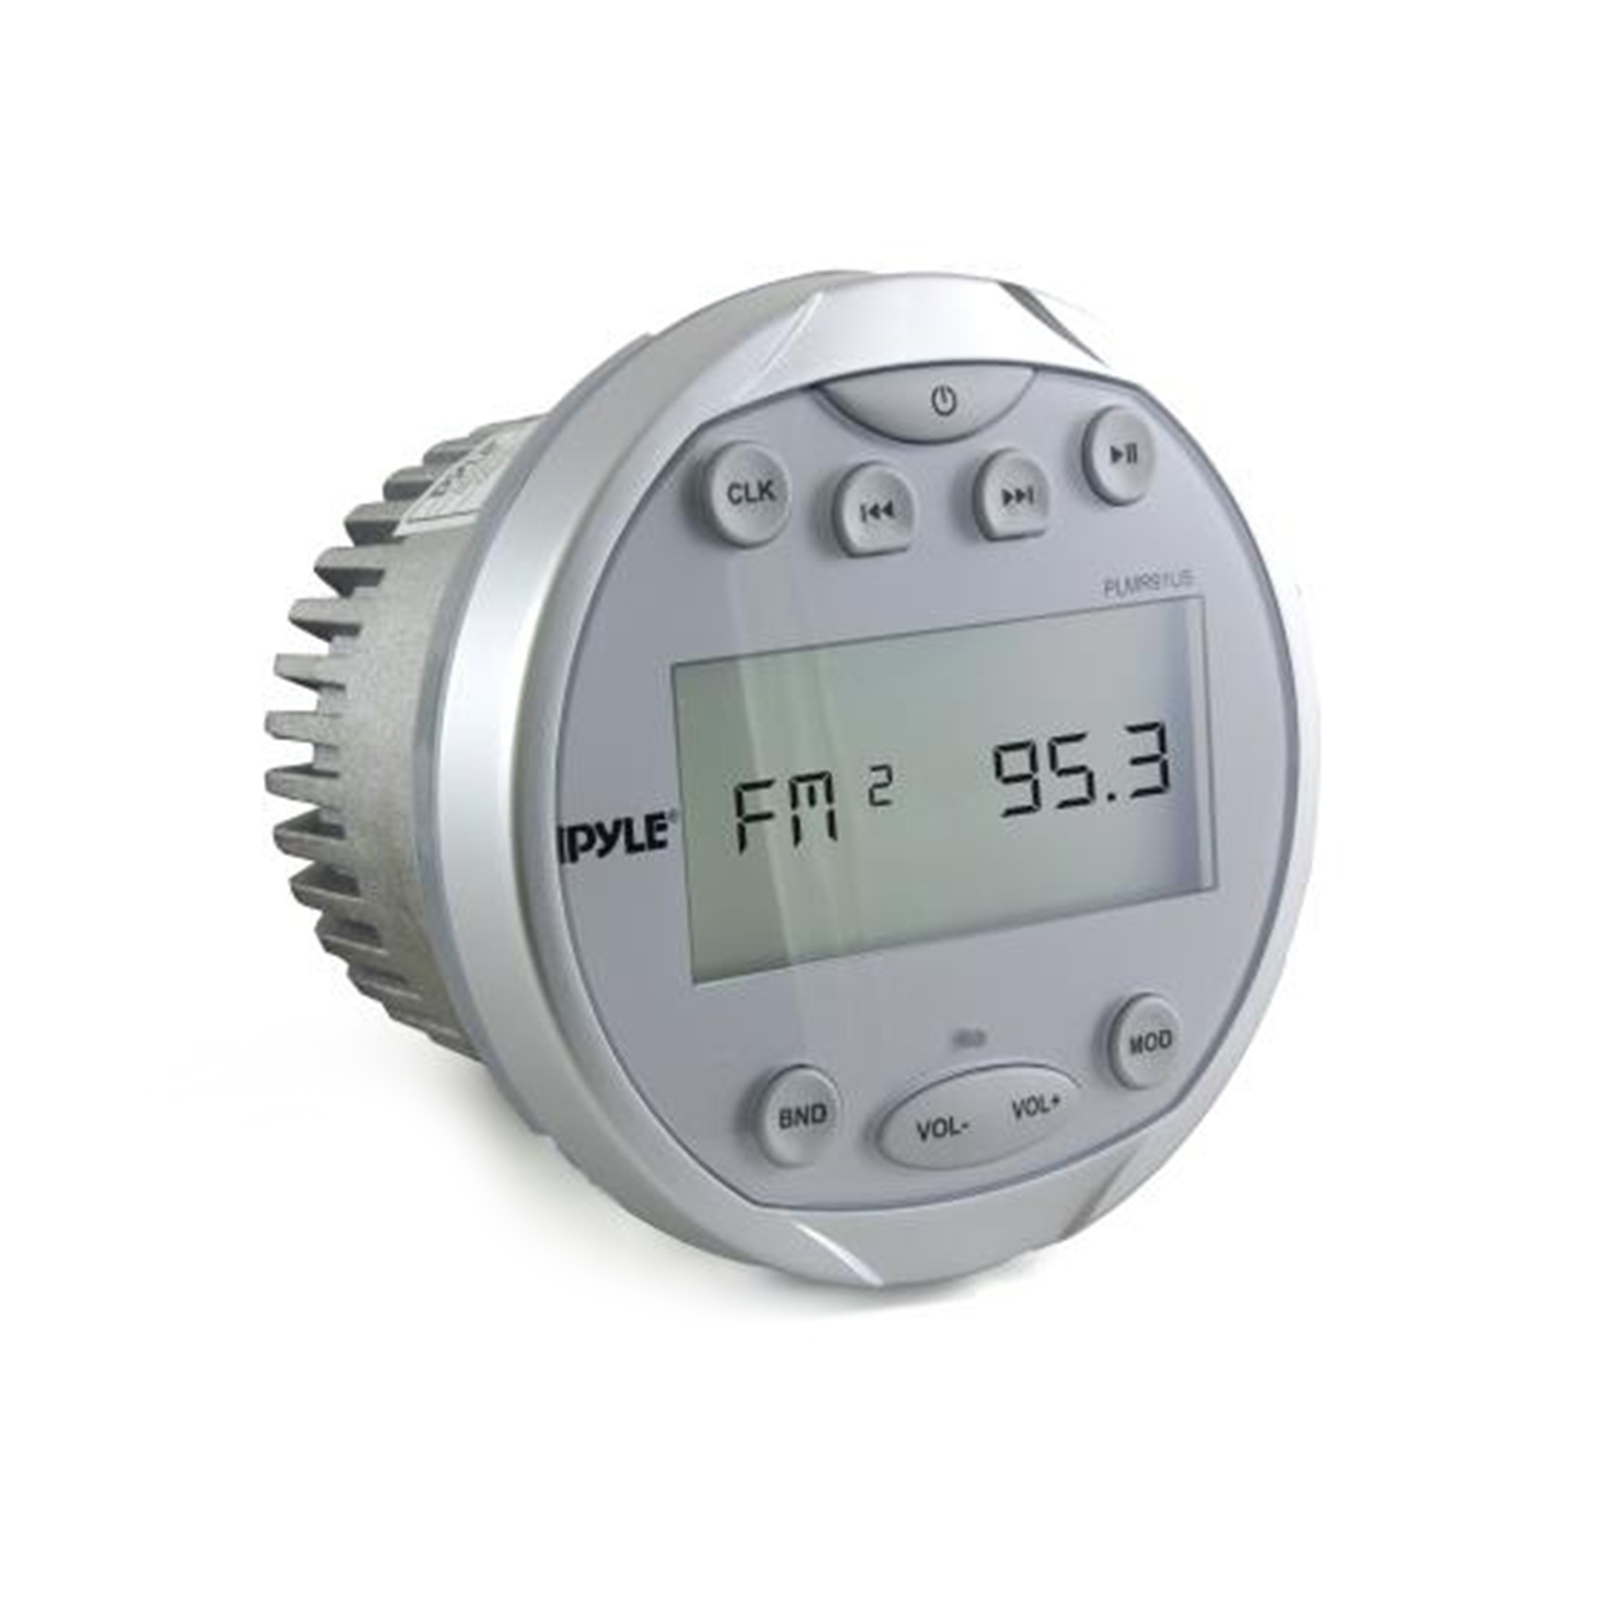 Waterproof BT Marine Media Receiver Stereo Radio (USB MP3 & AUX Inputs) AM FM Radio, Round Circle, Silver by Pyle